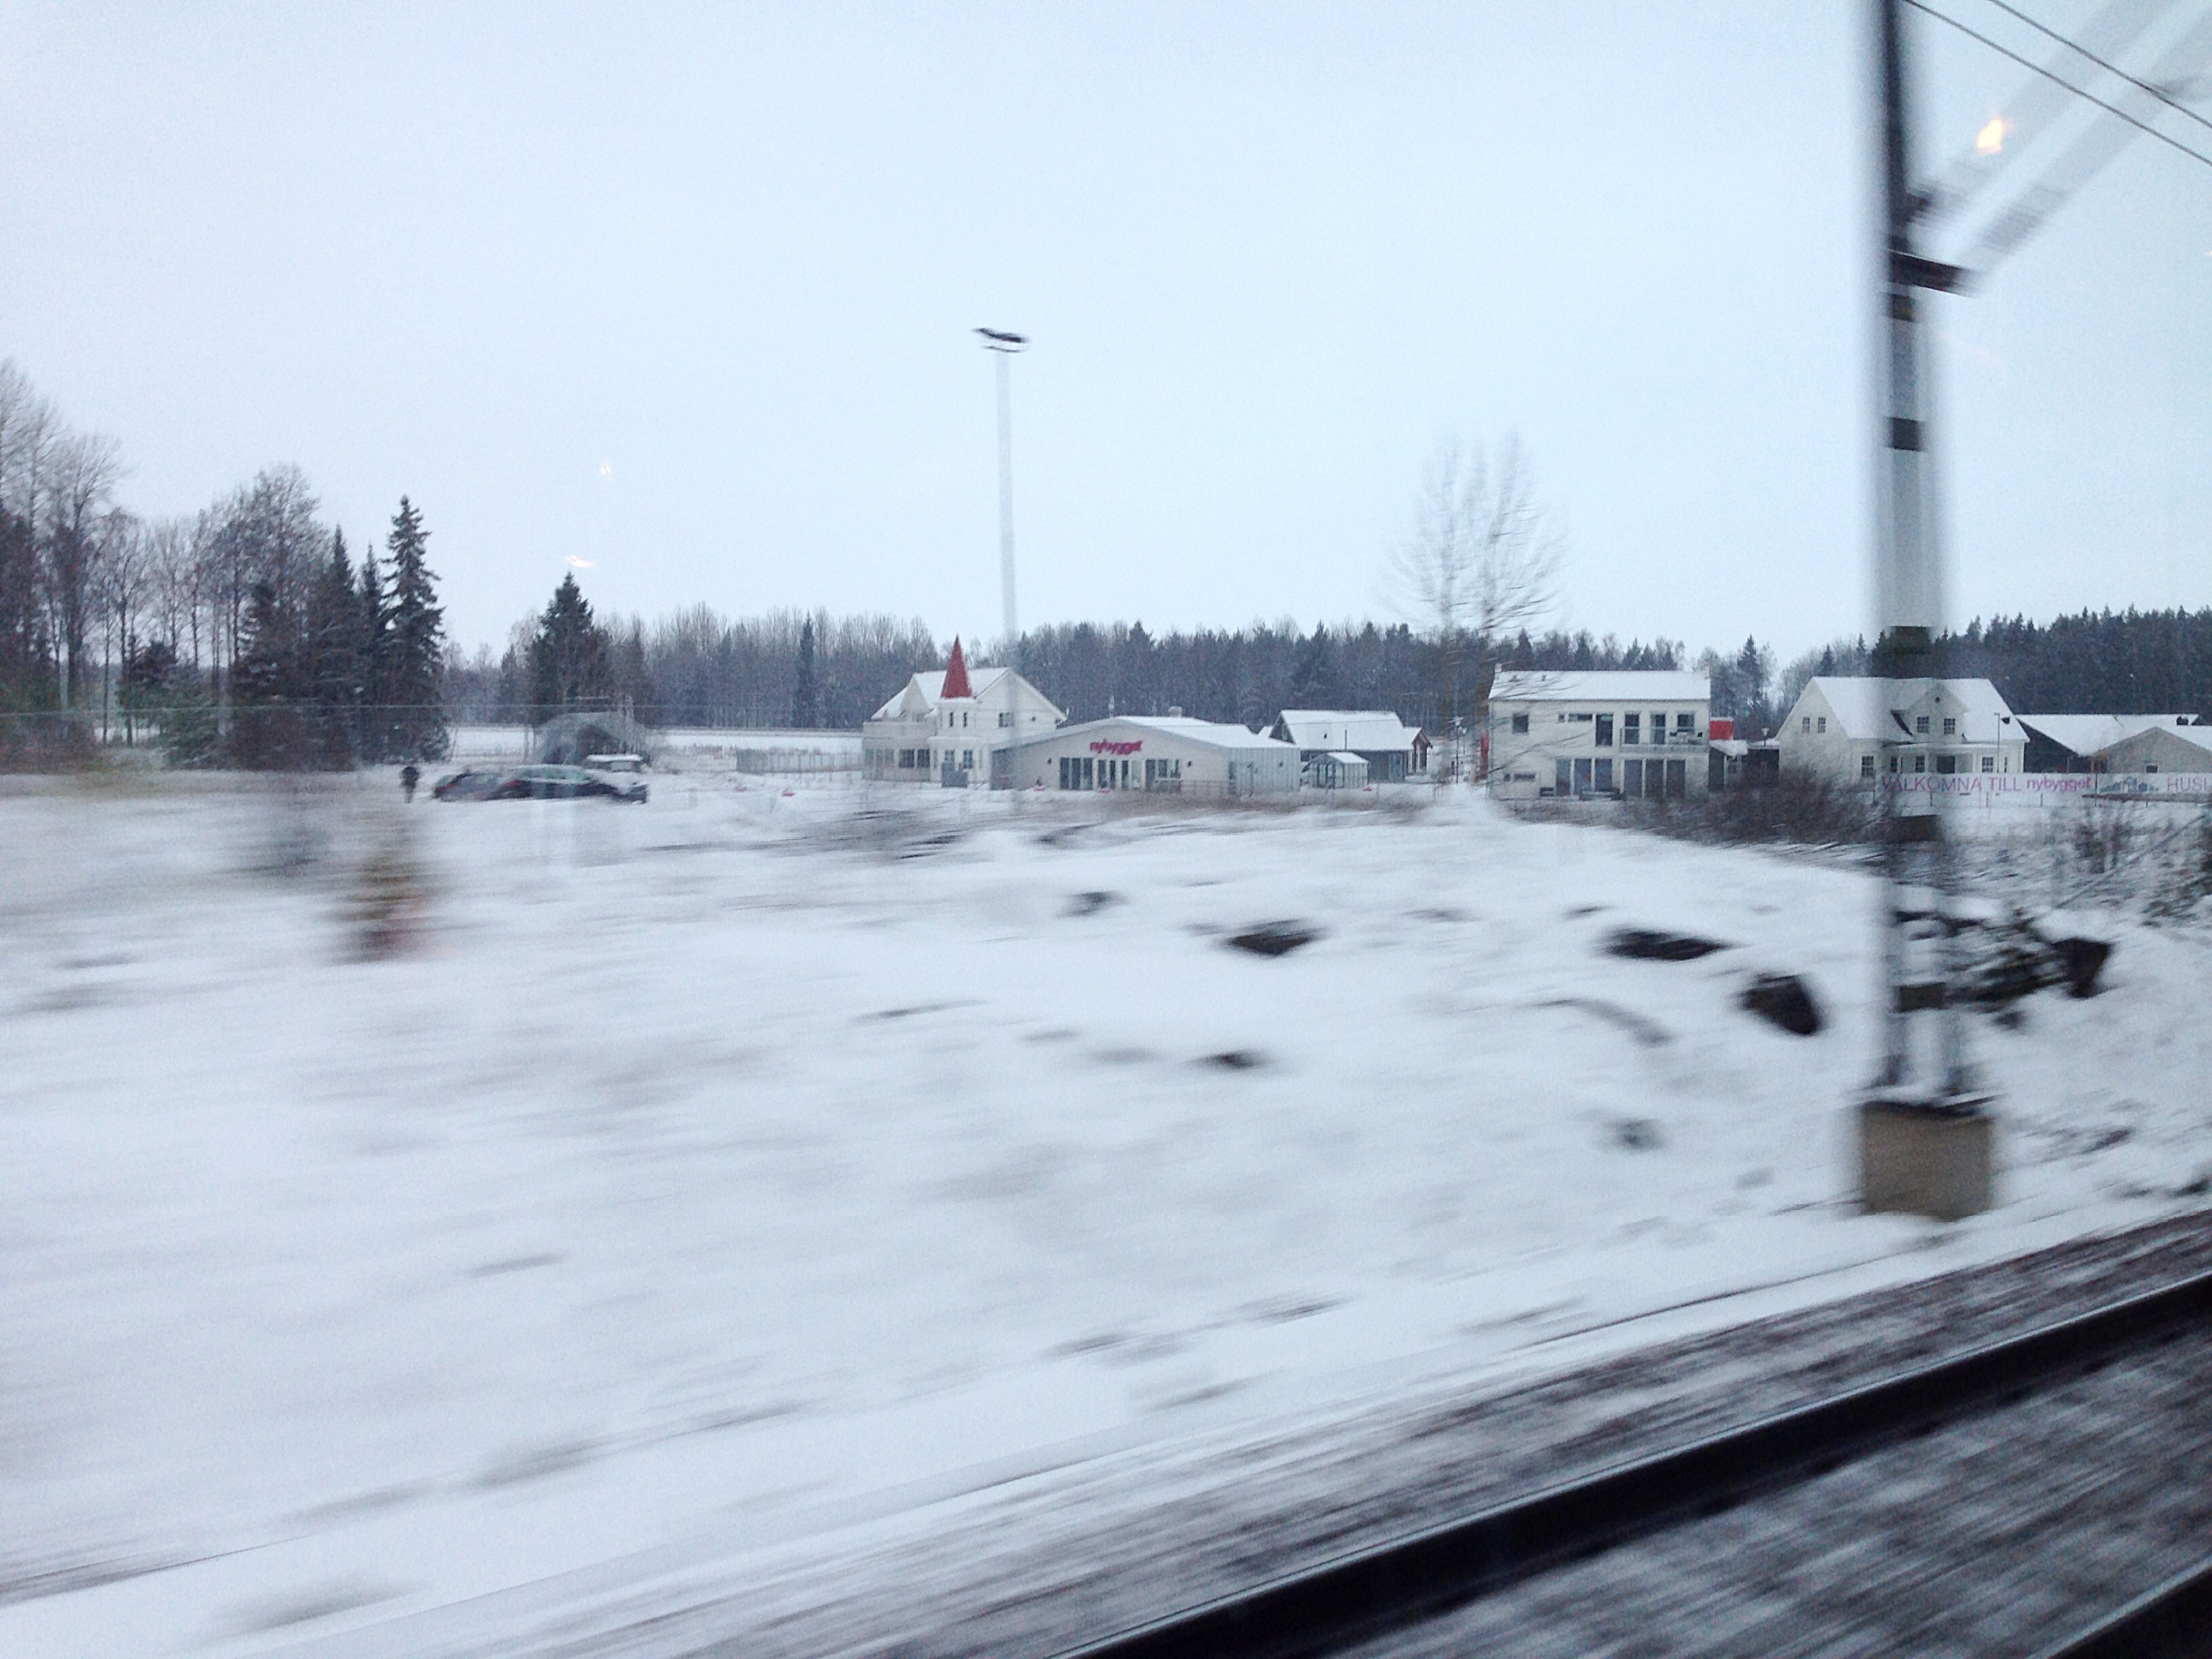 Snow on Stockholm Train From Airport